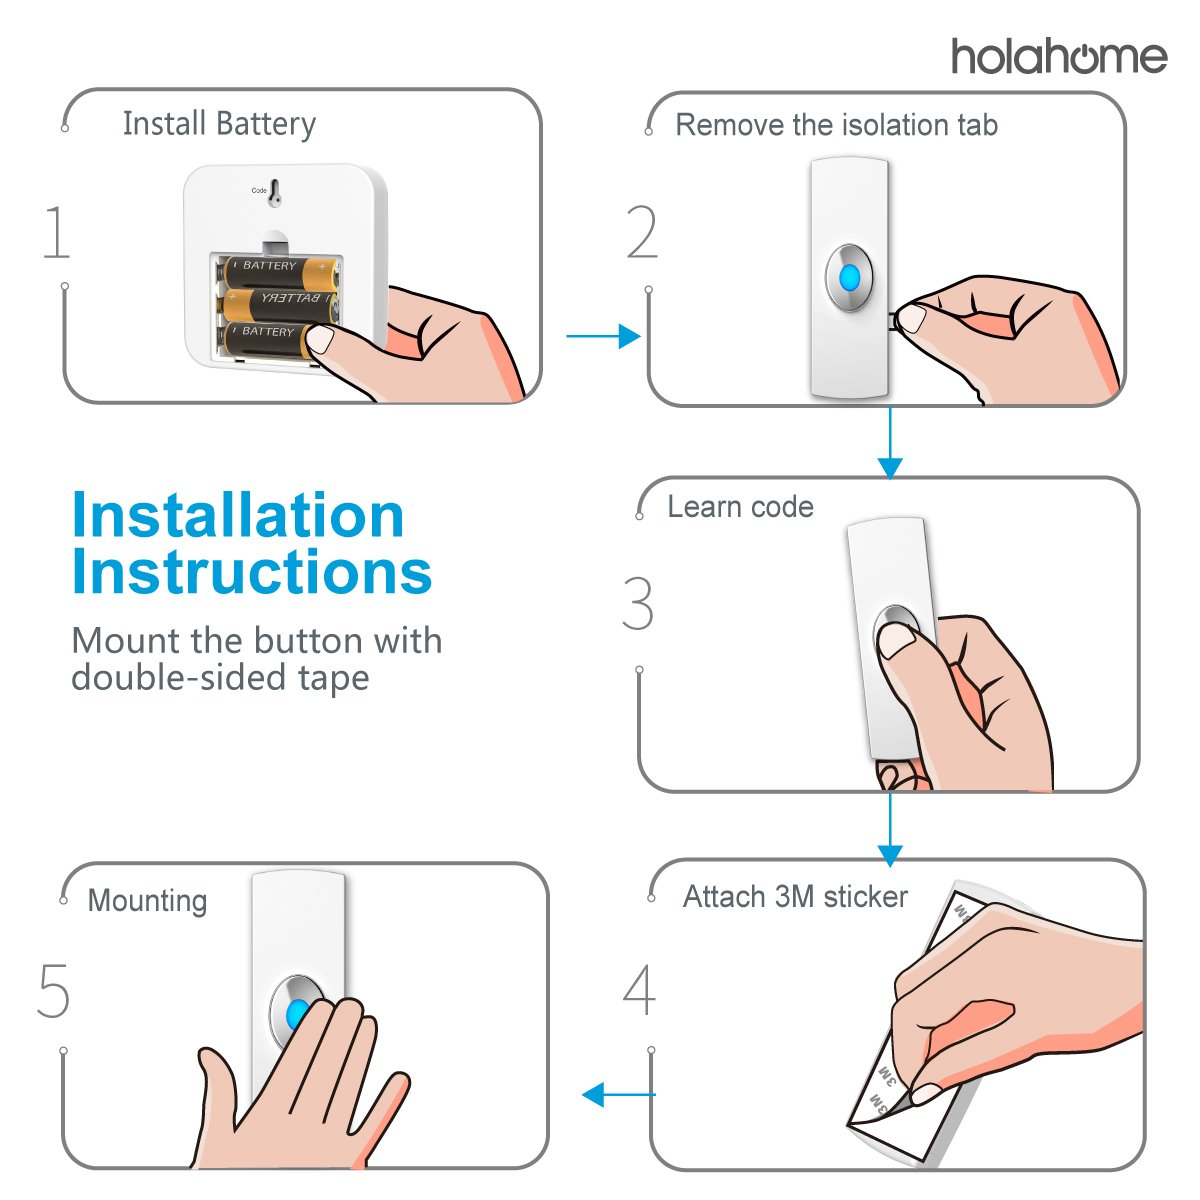 Holahome Wireless Doorbell - Waterproof Portable Door Bell Chime Kit Push Button with 2 Portable Receivers 32 Melodies Wireless Door Alarm Chime Long Range Battery Operated for Home Office White by holahome (Image #9)